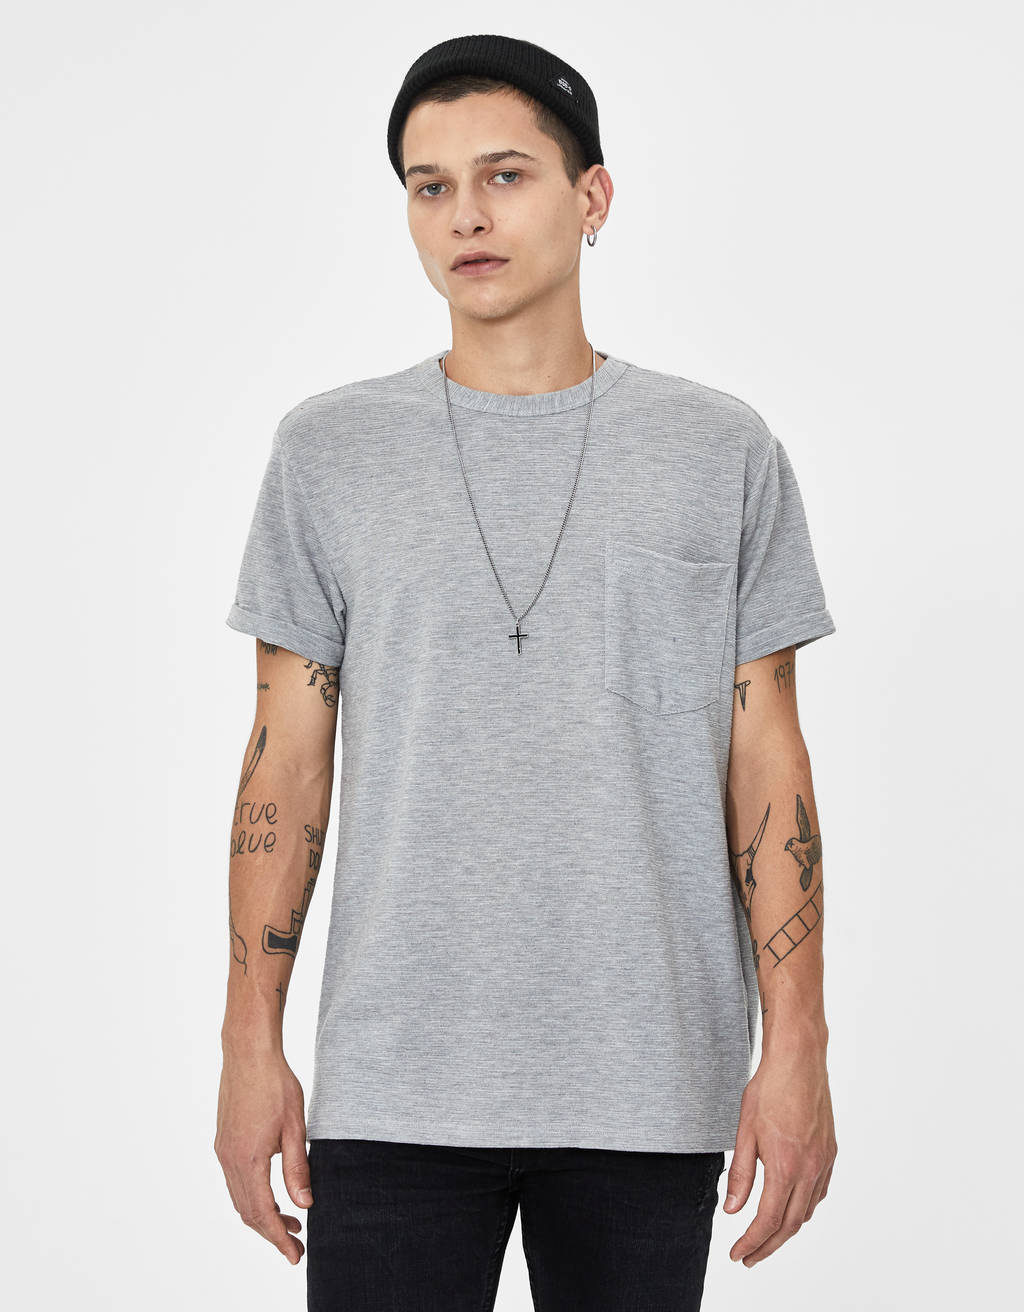 T-shirt com cutwork